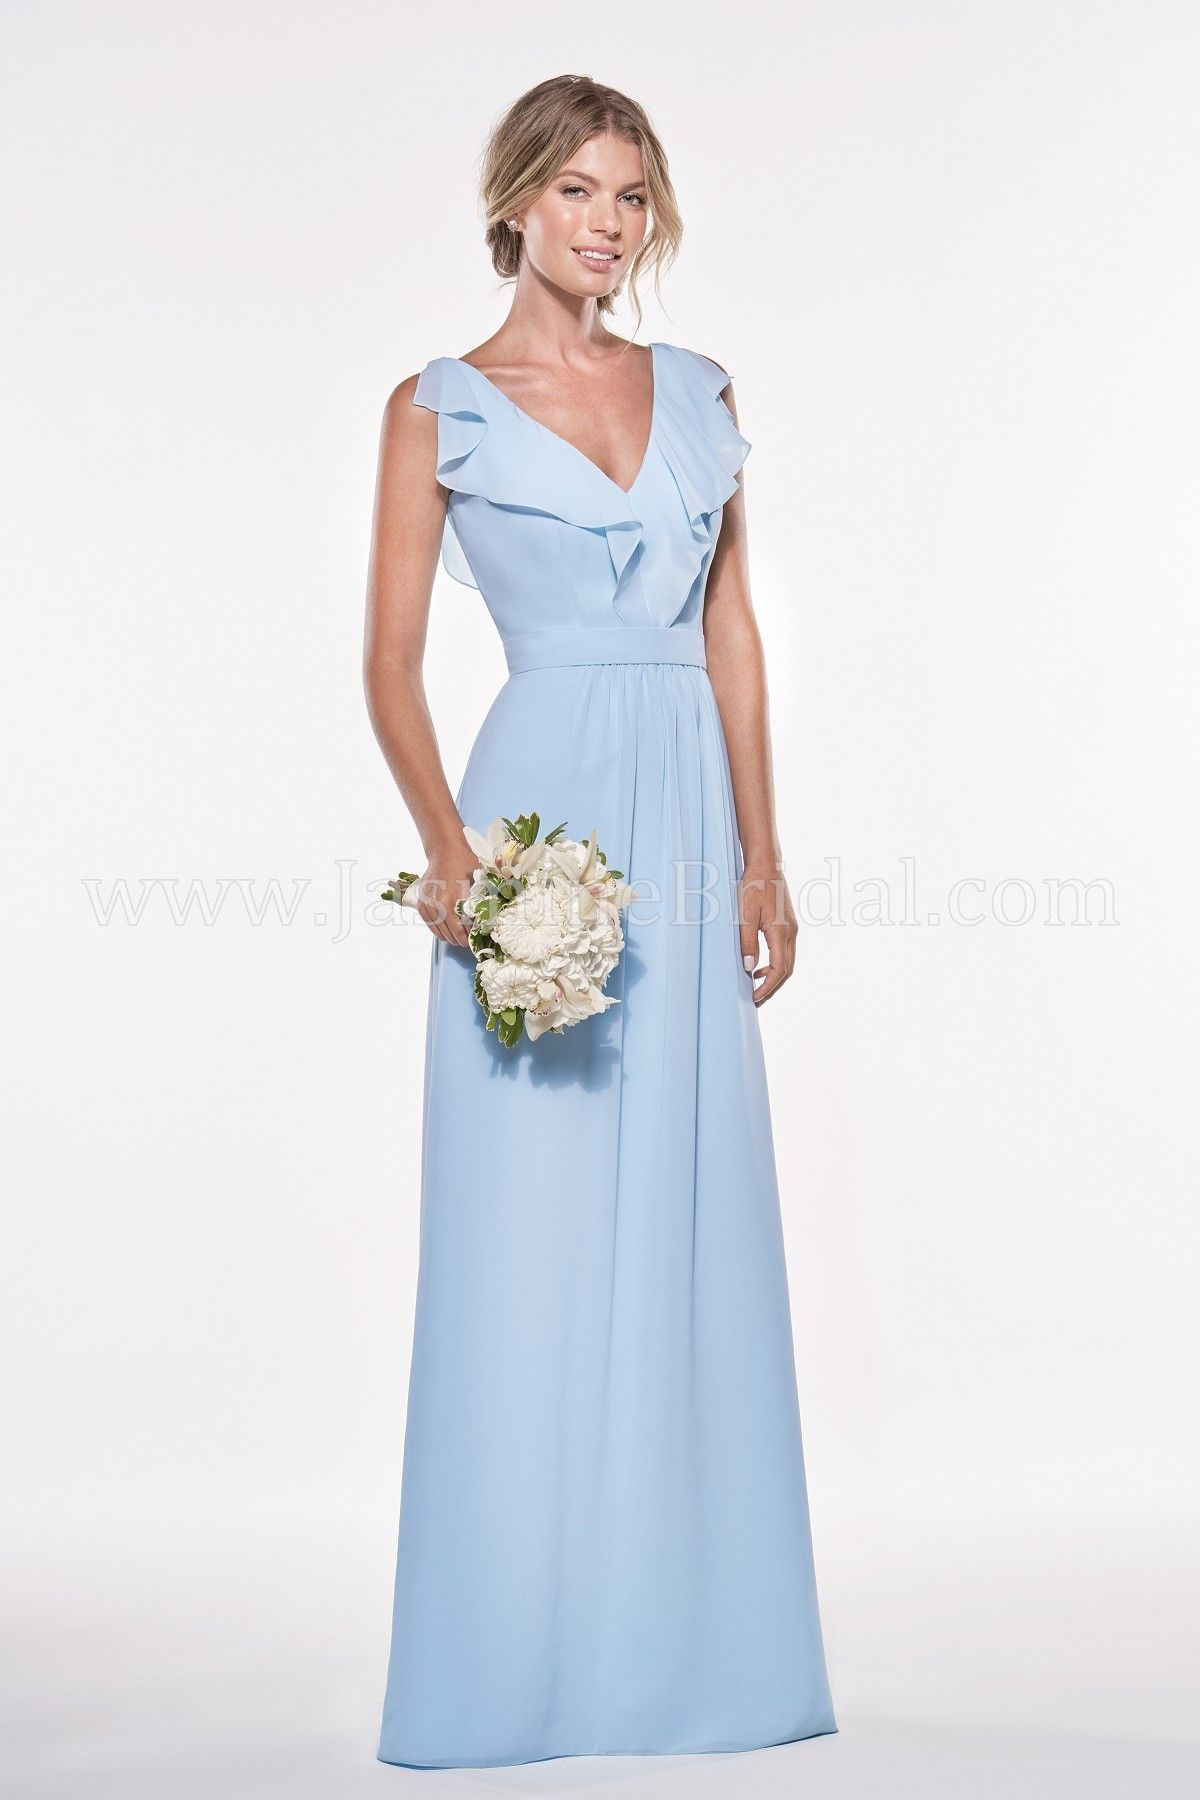 ef121a5246f3 Jasmine Bridal | Jasmine Bridesmaids Style P196007 in Powder Blue ...